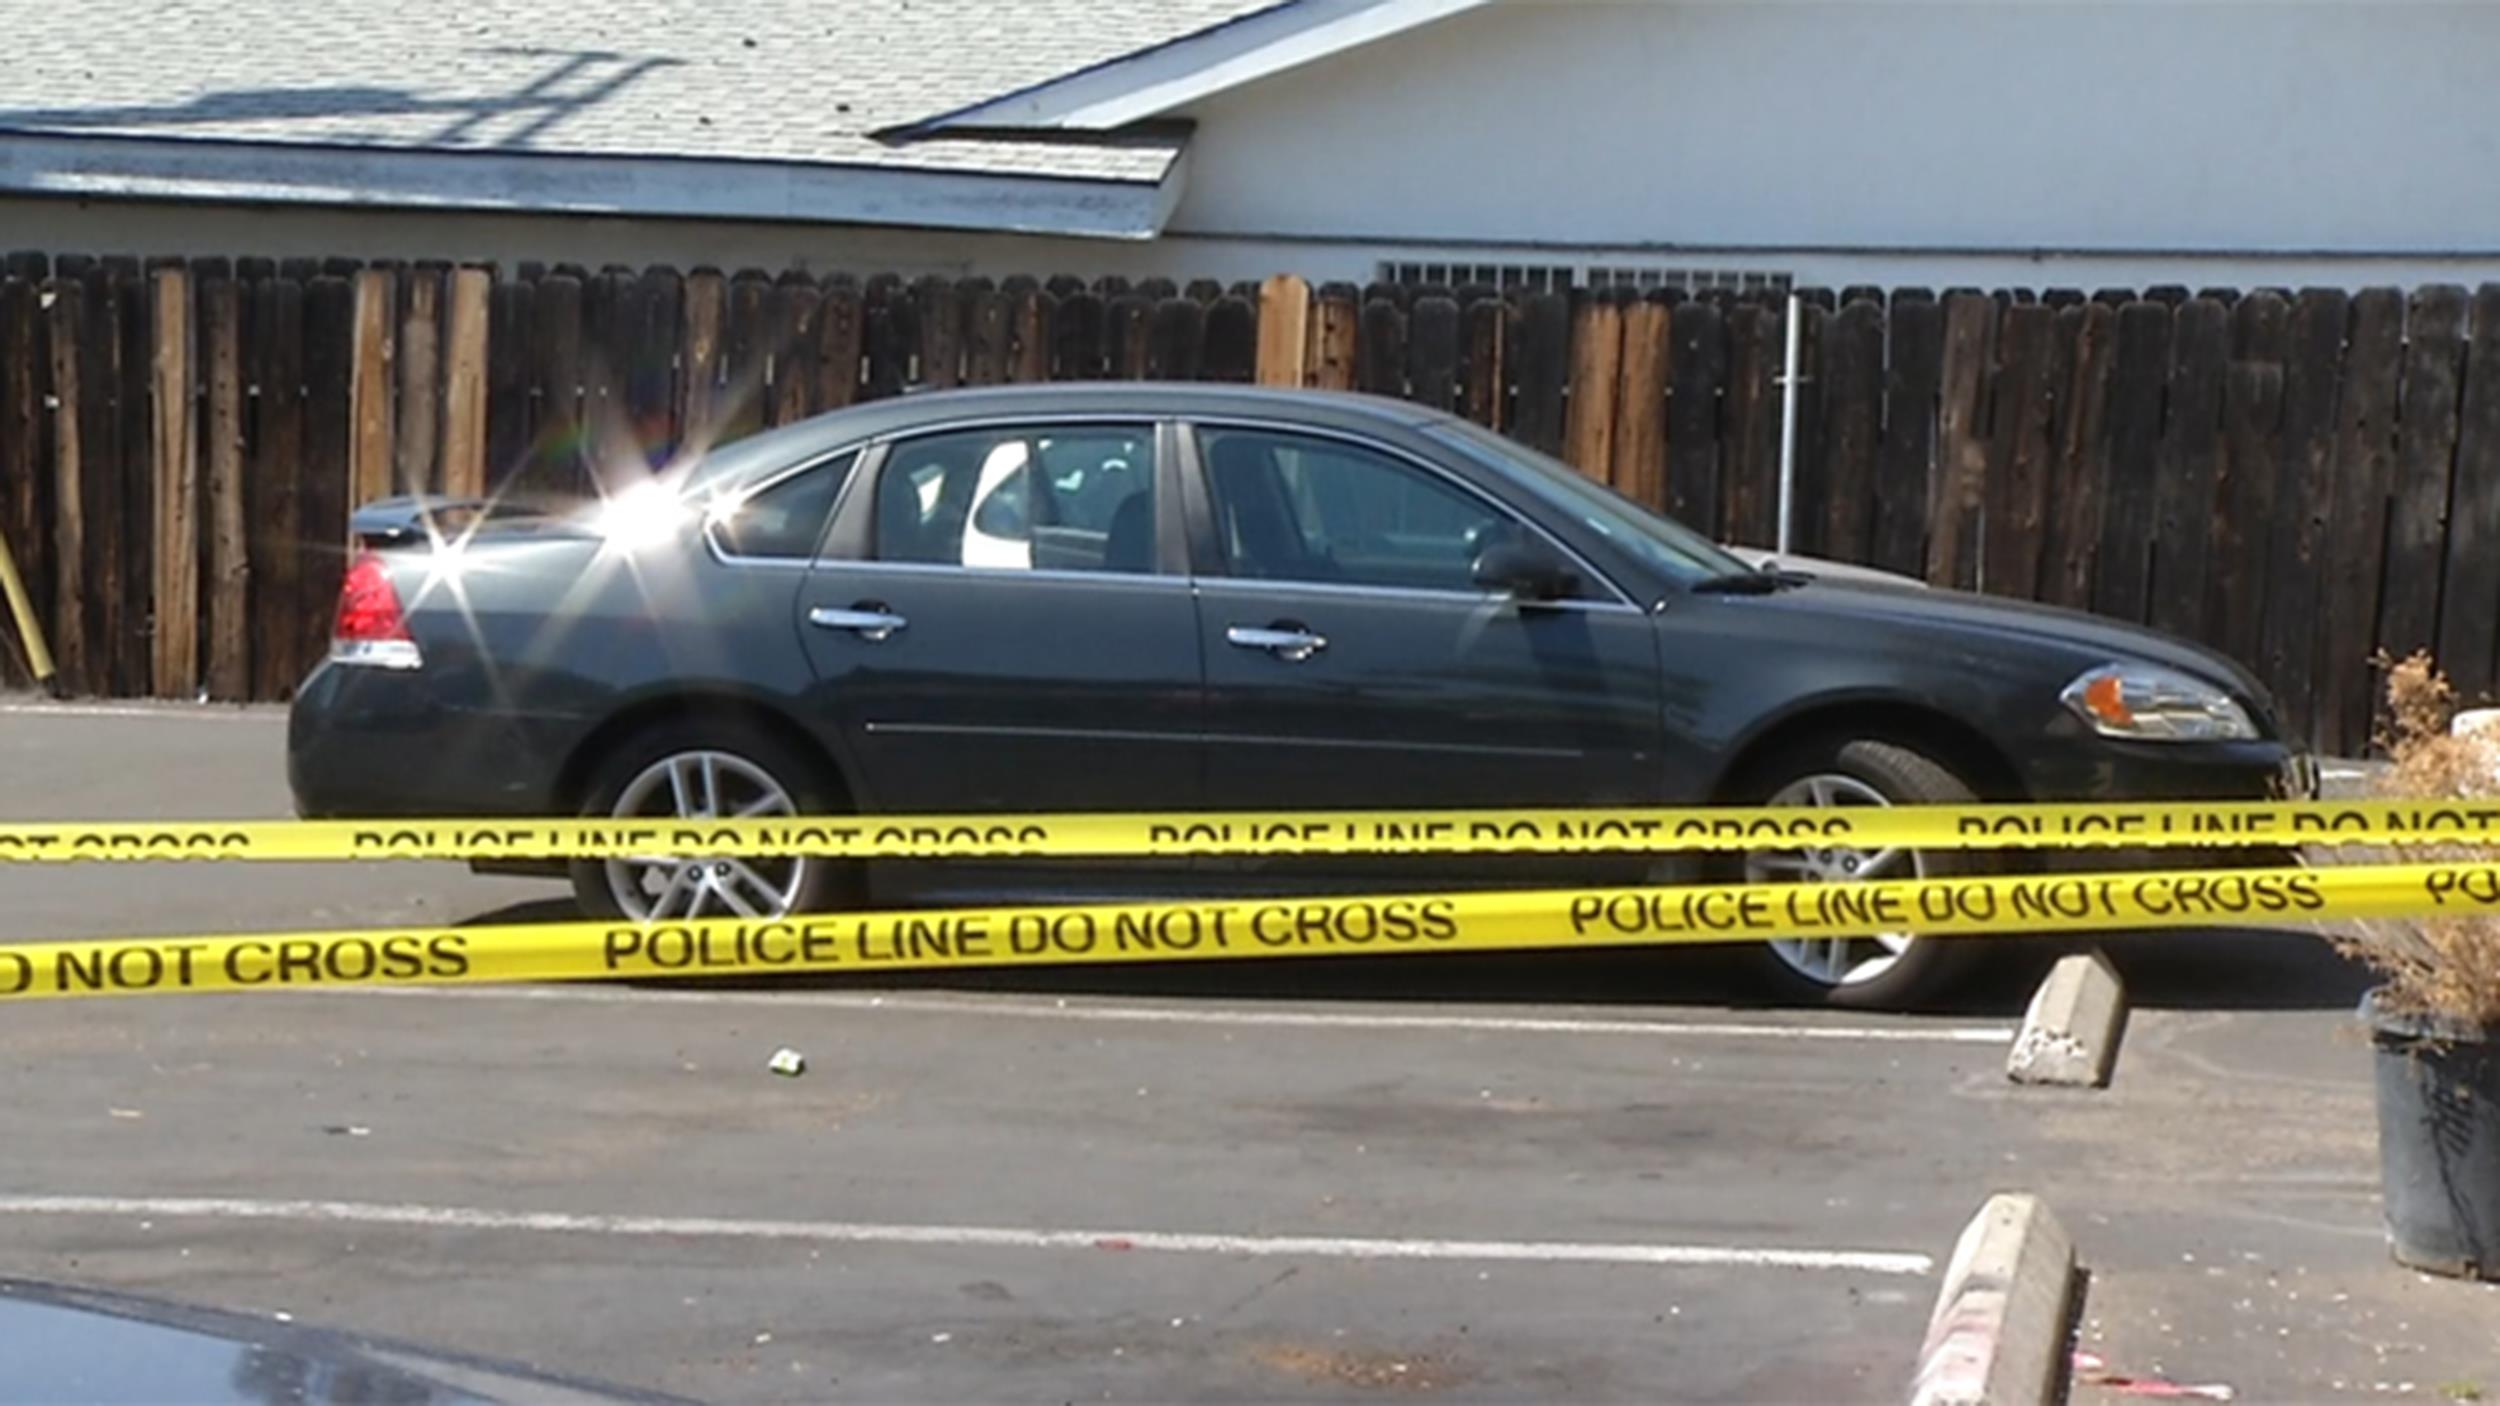 Image: The scene where parents Israel Soto, 30, and Jessica Quezada, 23, left their 4-month-old baby unattended in their car overnight at an apartment complex in San Diego's El Cajon area.